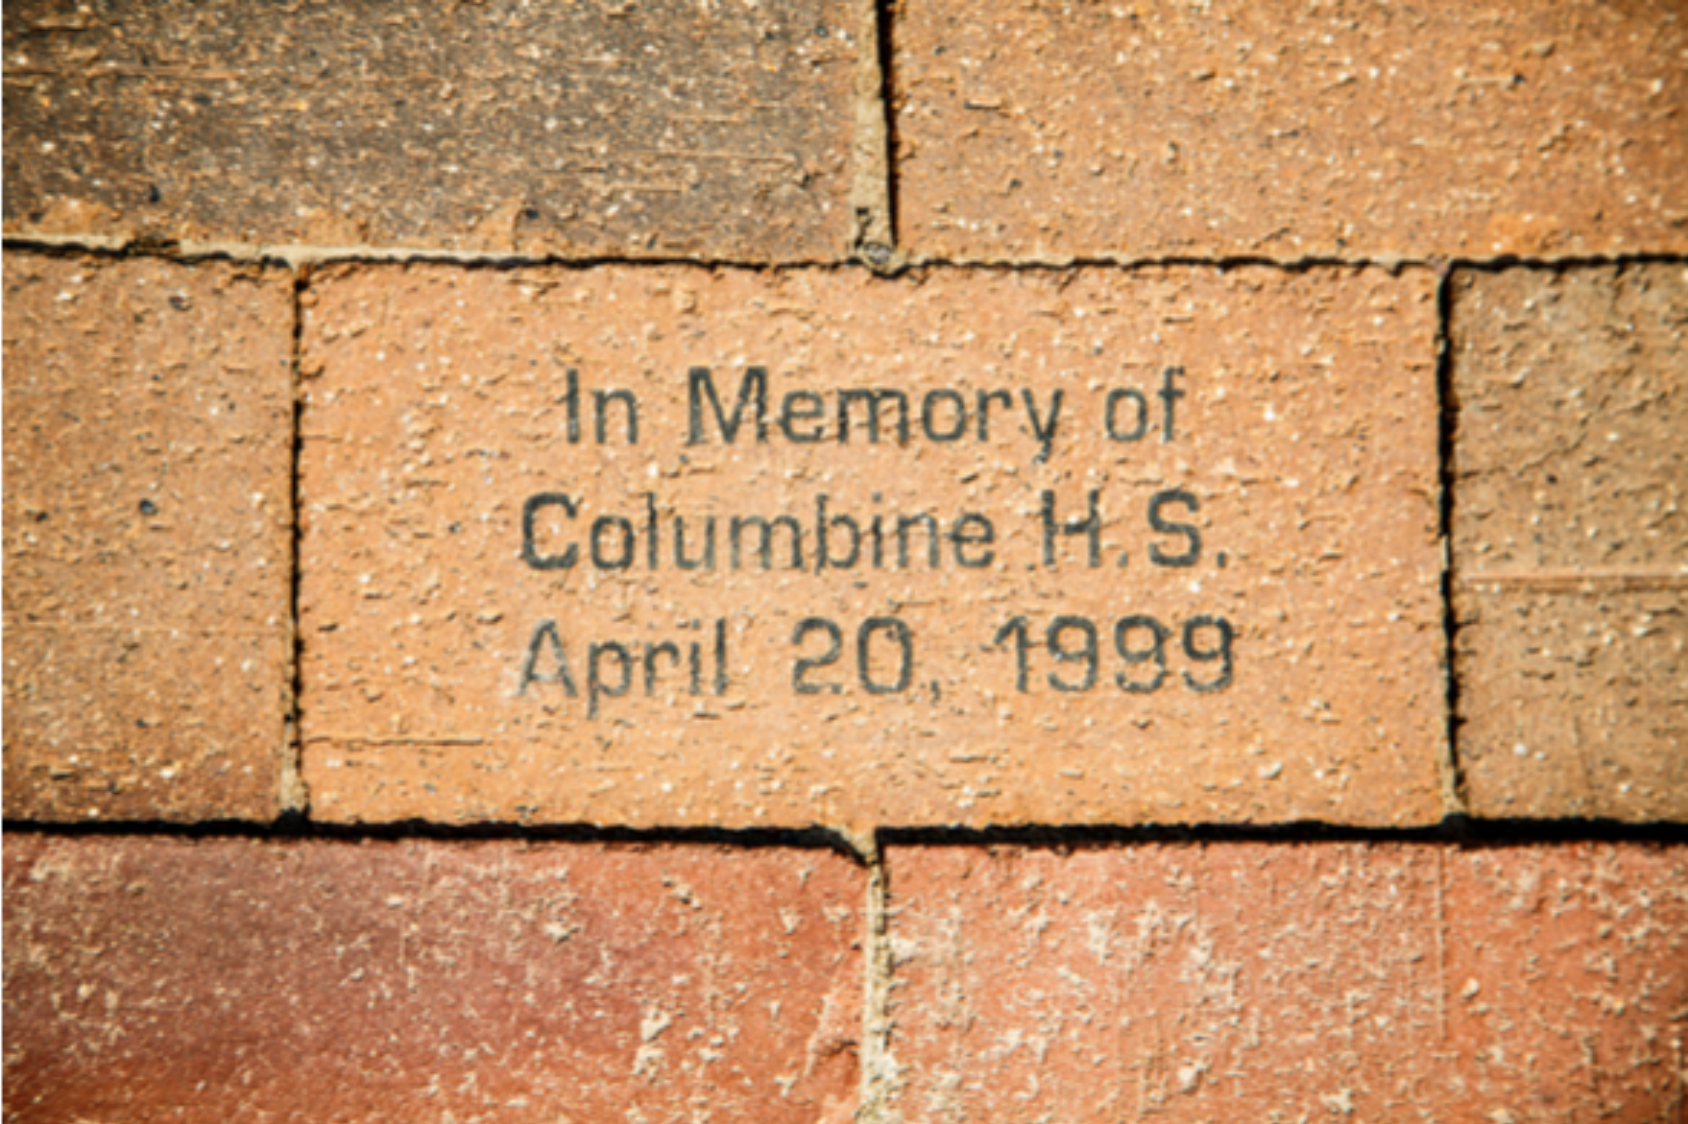 Twenty Years After Columbine: Are Our Kids Safer?